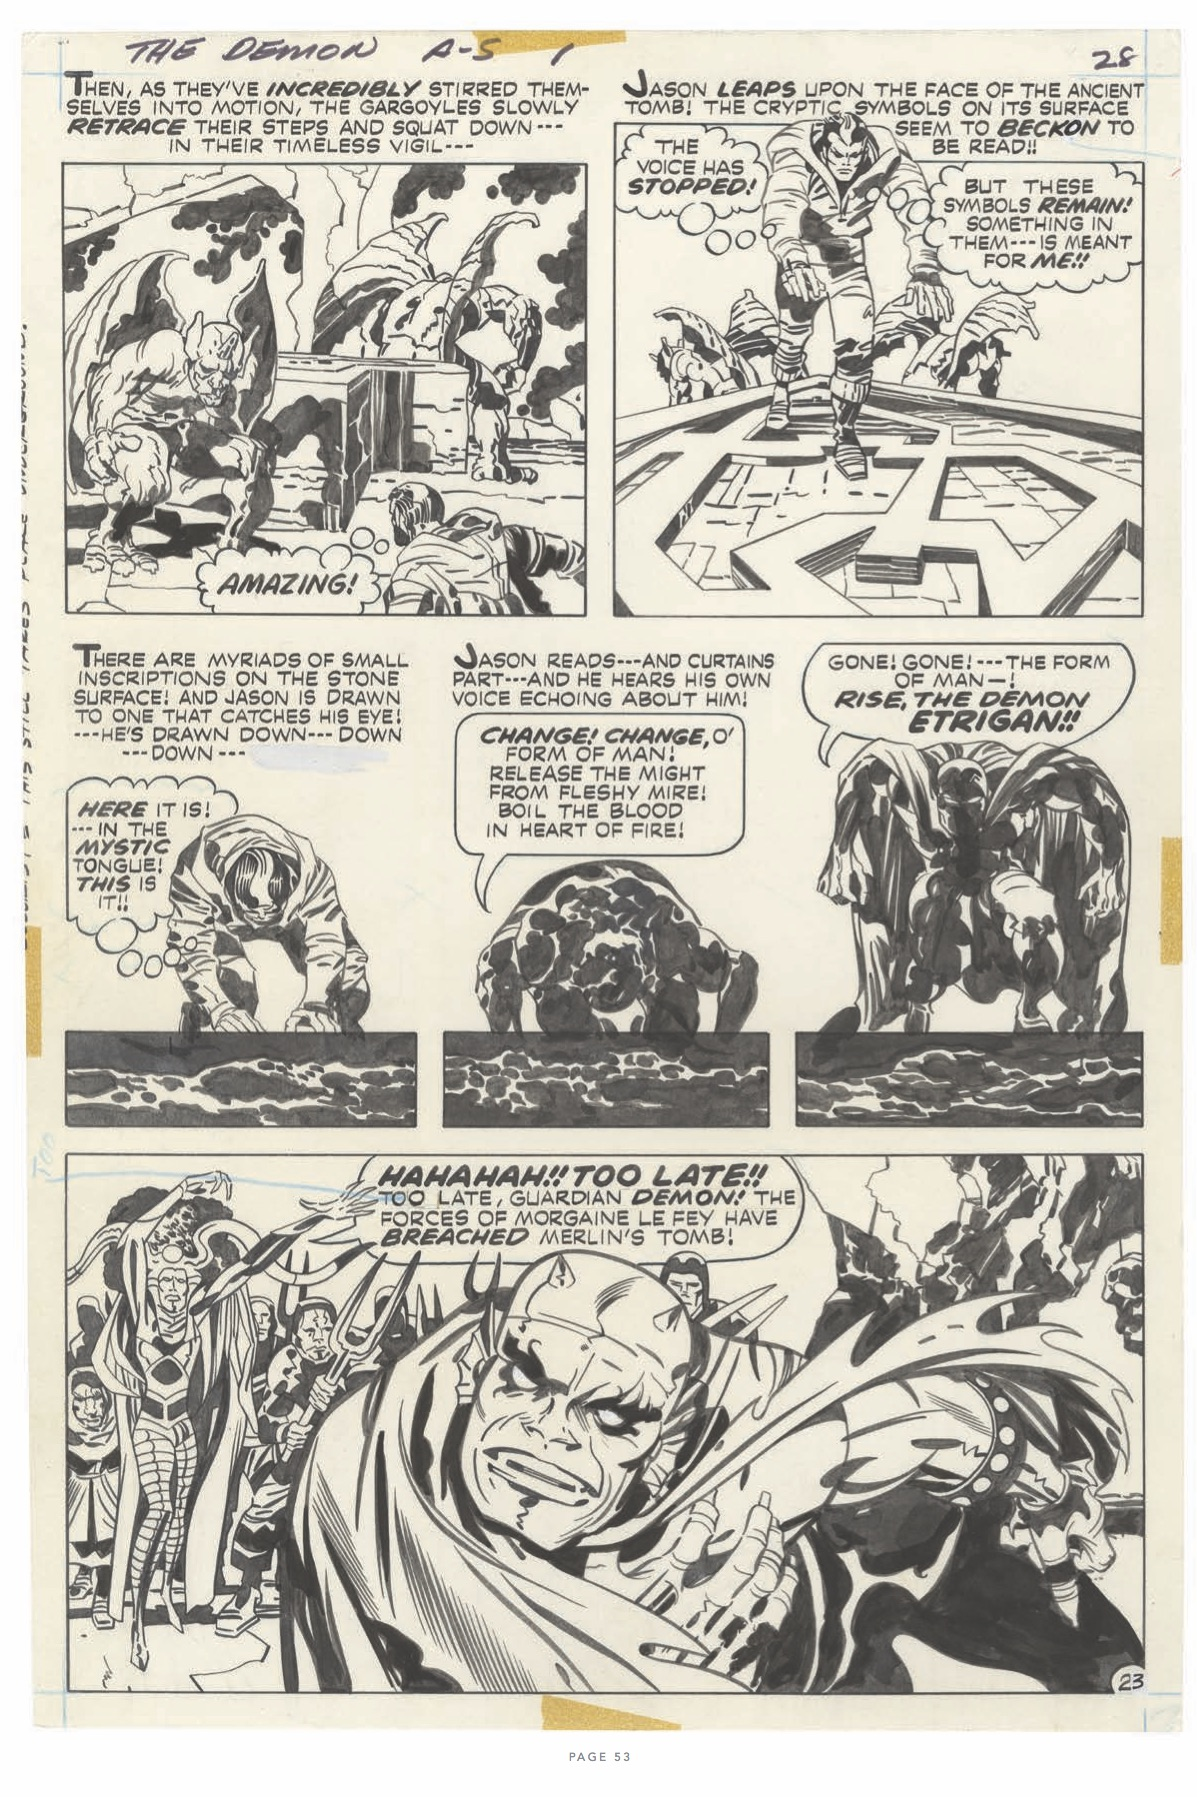 jackkirby_pencils_inks-lodemon3ink